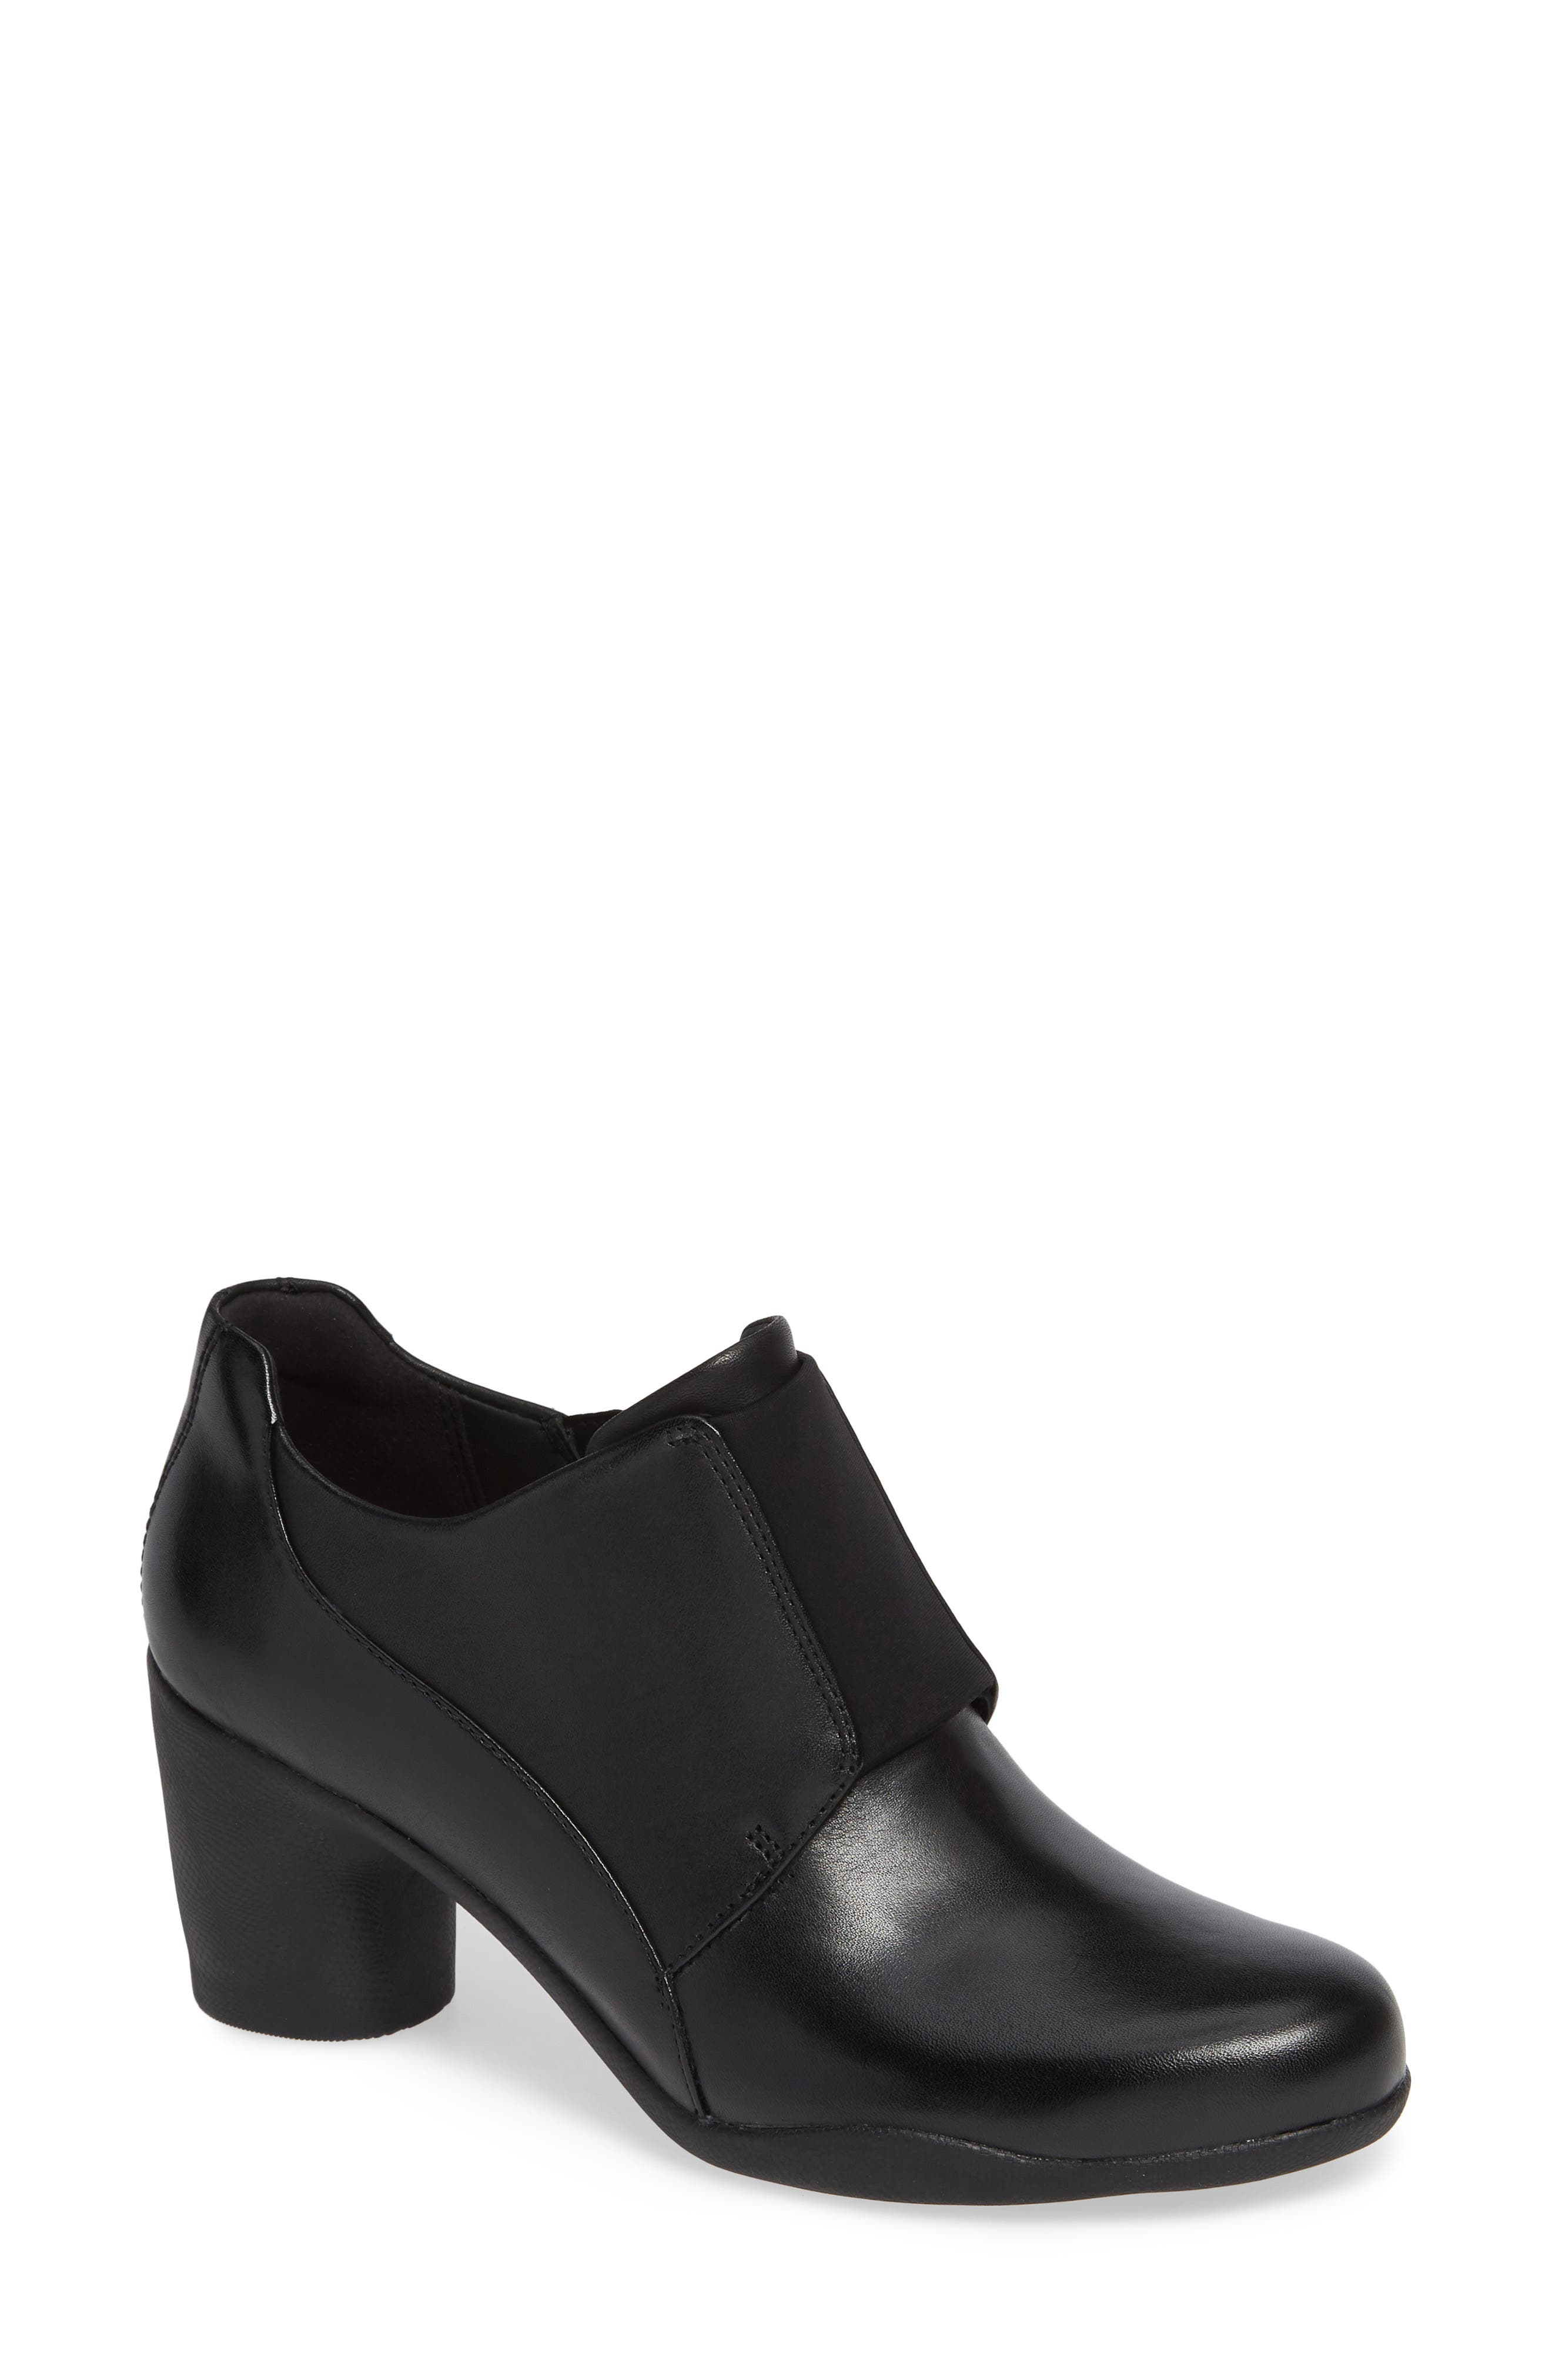 CLARKS<SUP>®</SUP>, Un Rosa Zip Bootie, Main thumbnail 1, color, BLACK LEATHER